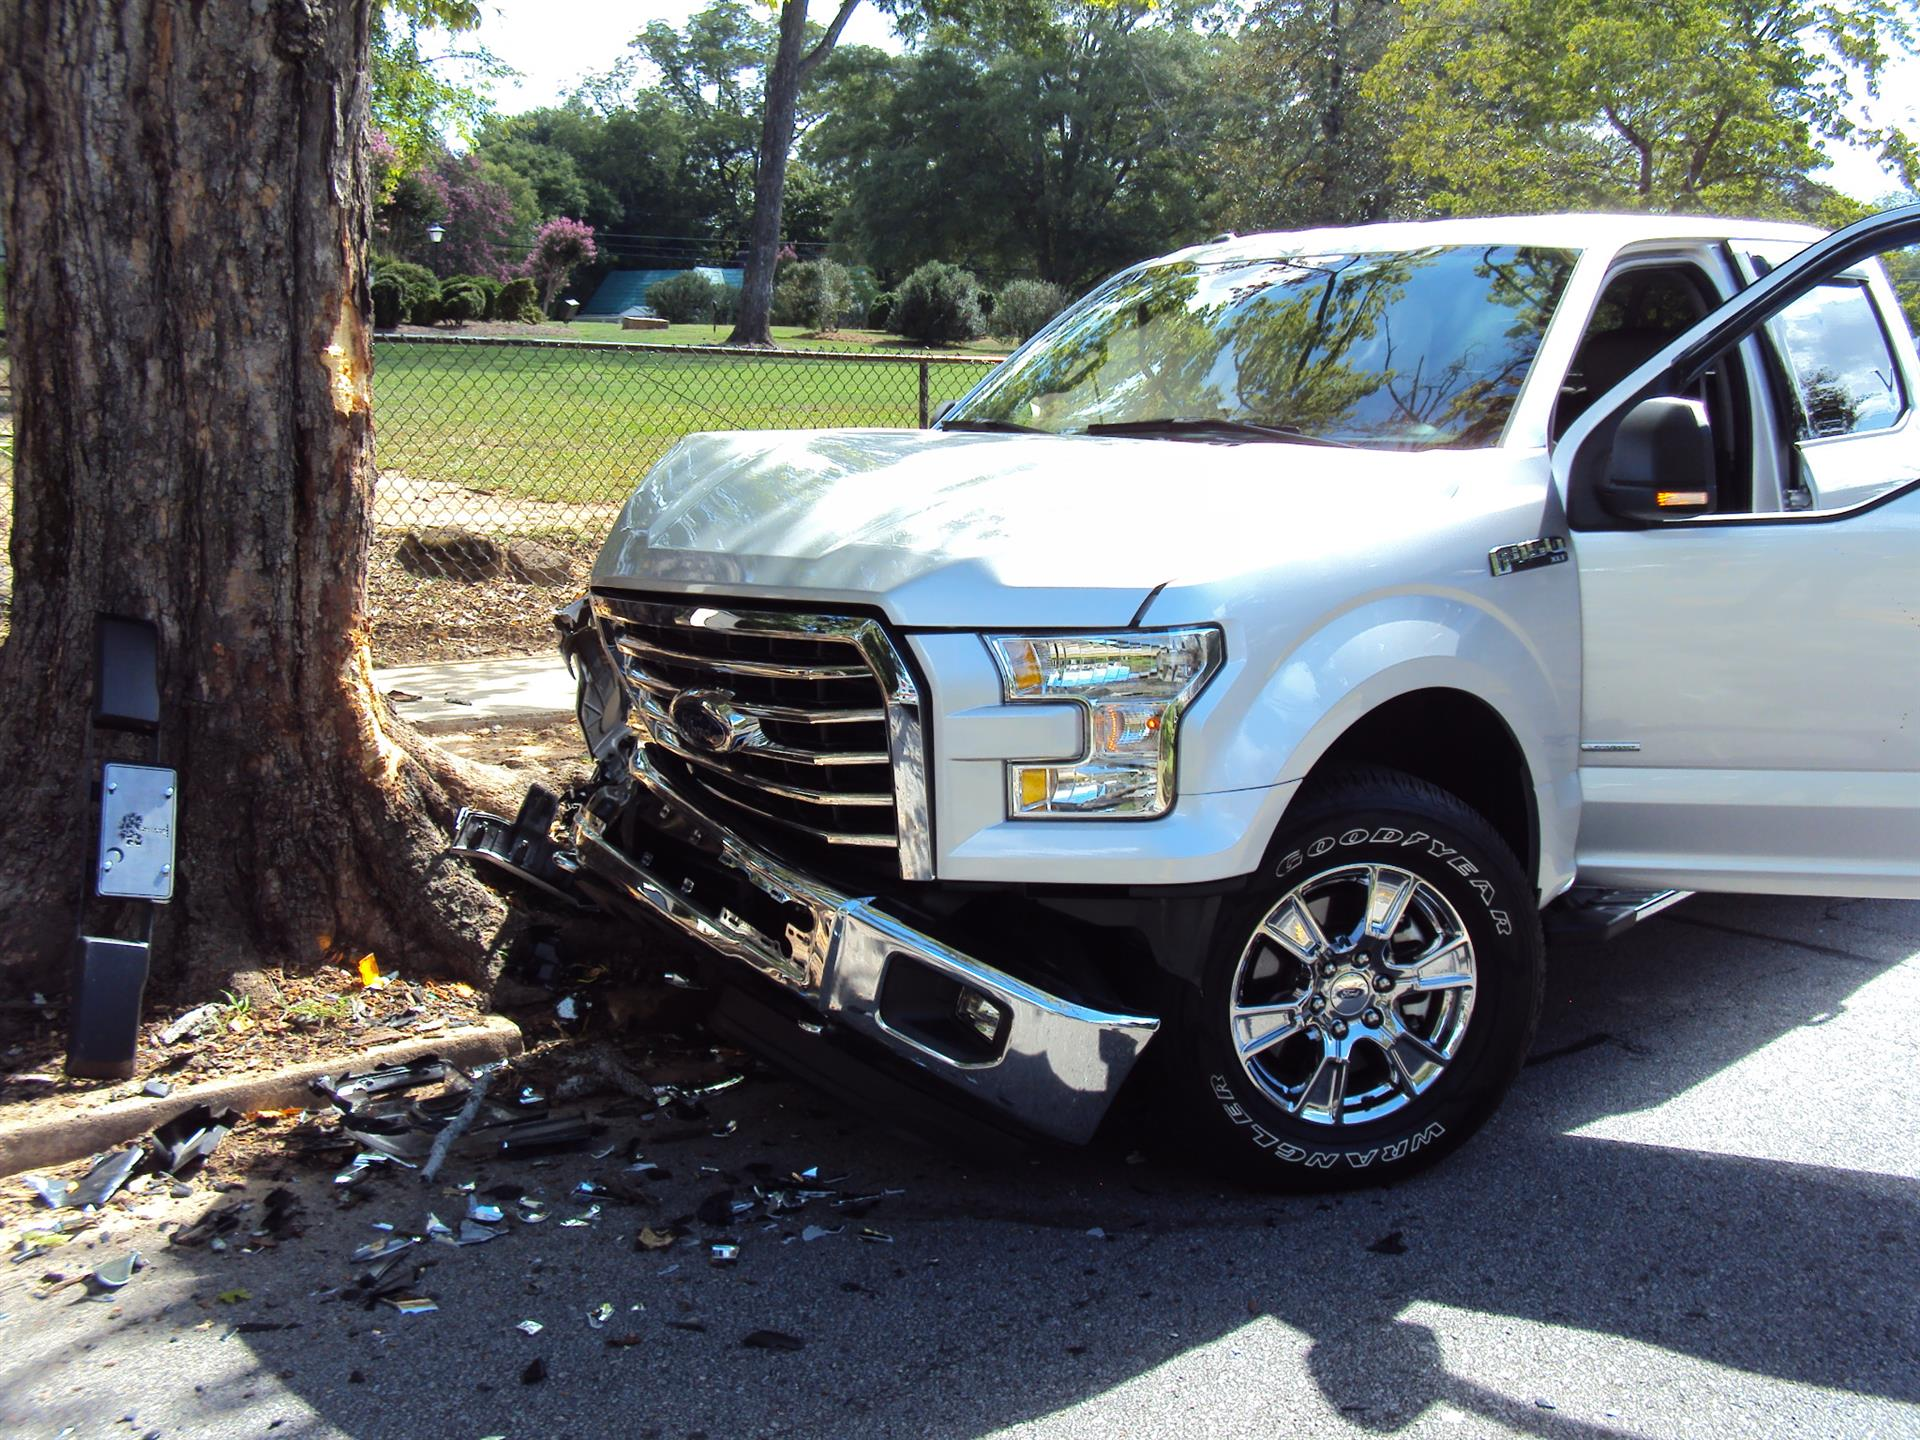 Truck crashed against tree with broken front bumper